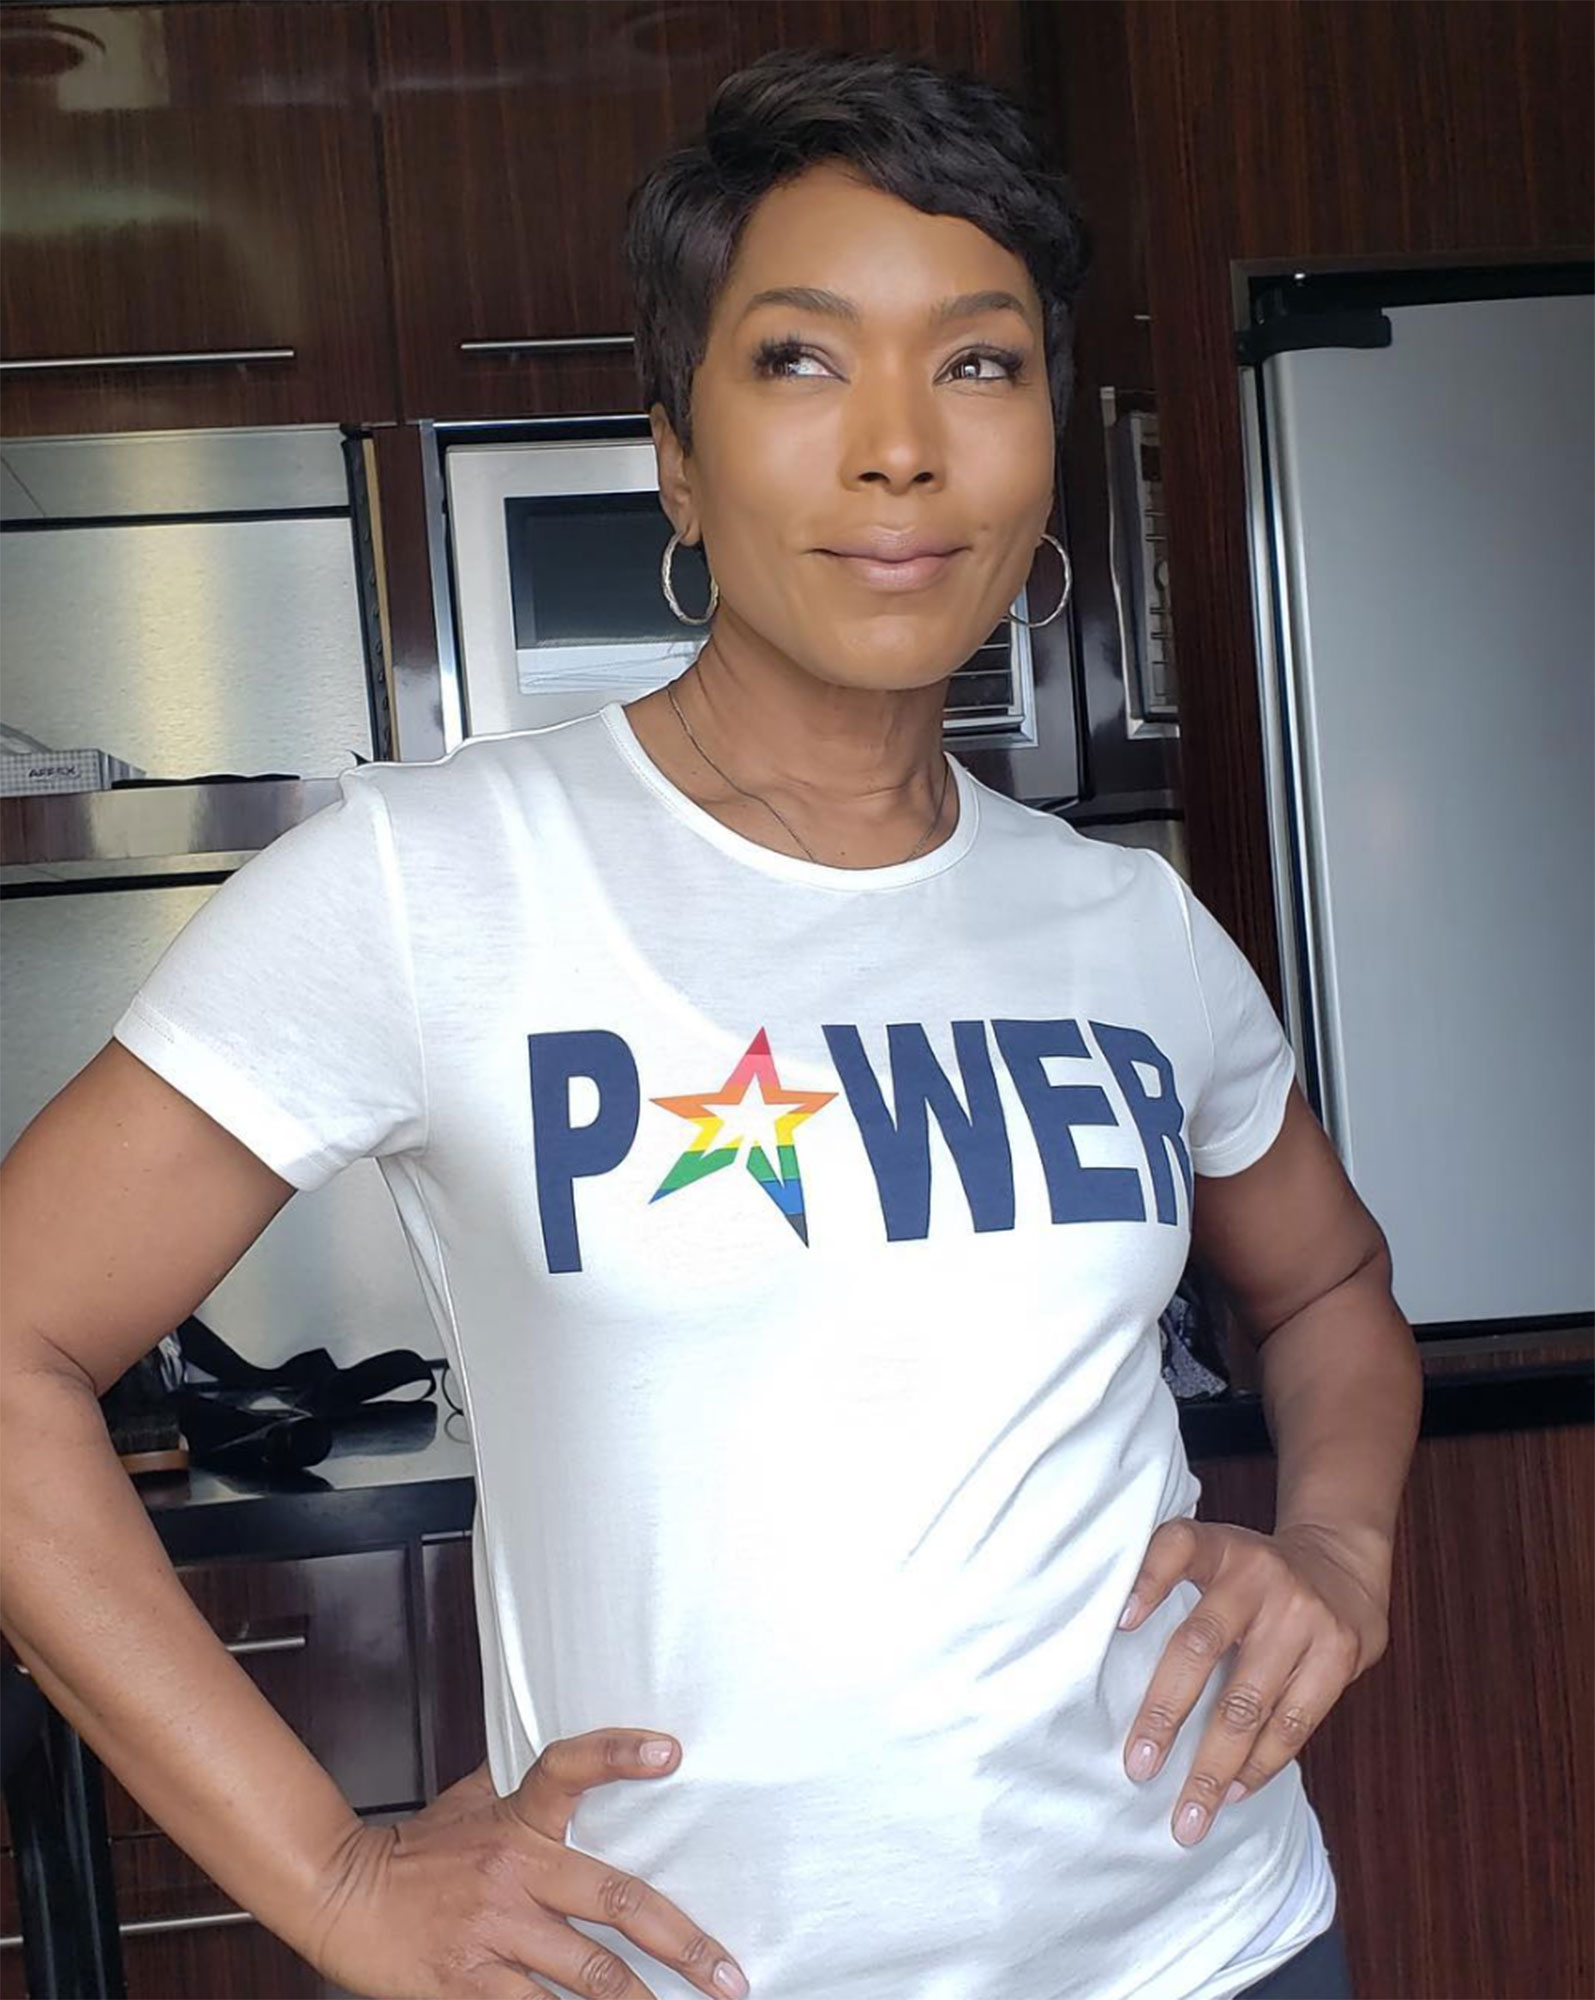 Angela Bassett Net-a-Porter Is Here With a Star-Studded T-Shirt Collection for International Women's Day - Showing off her power (and fierce pixie!), the actress rocked the bold tee by Perfect Moment. $170, net-a-porter.com